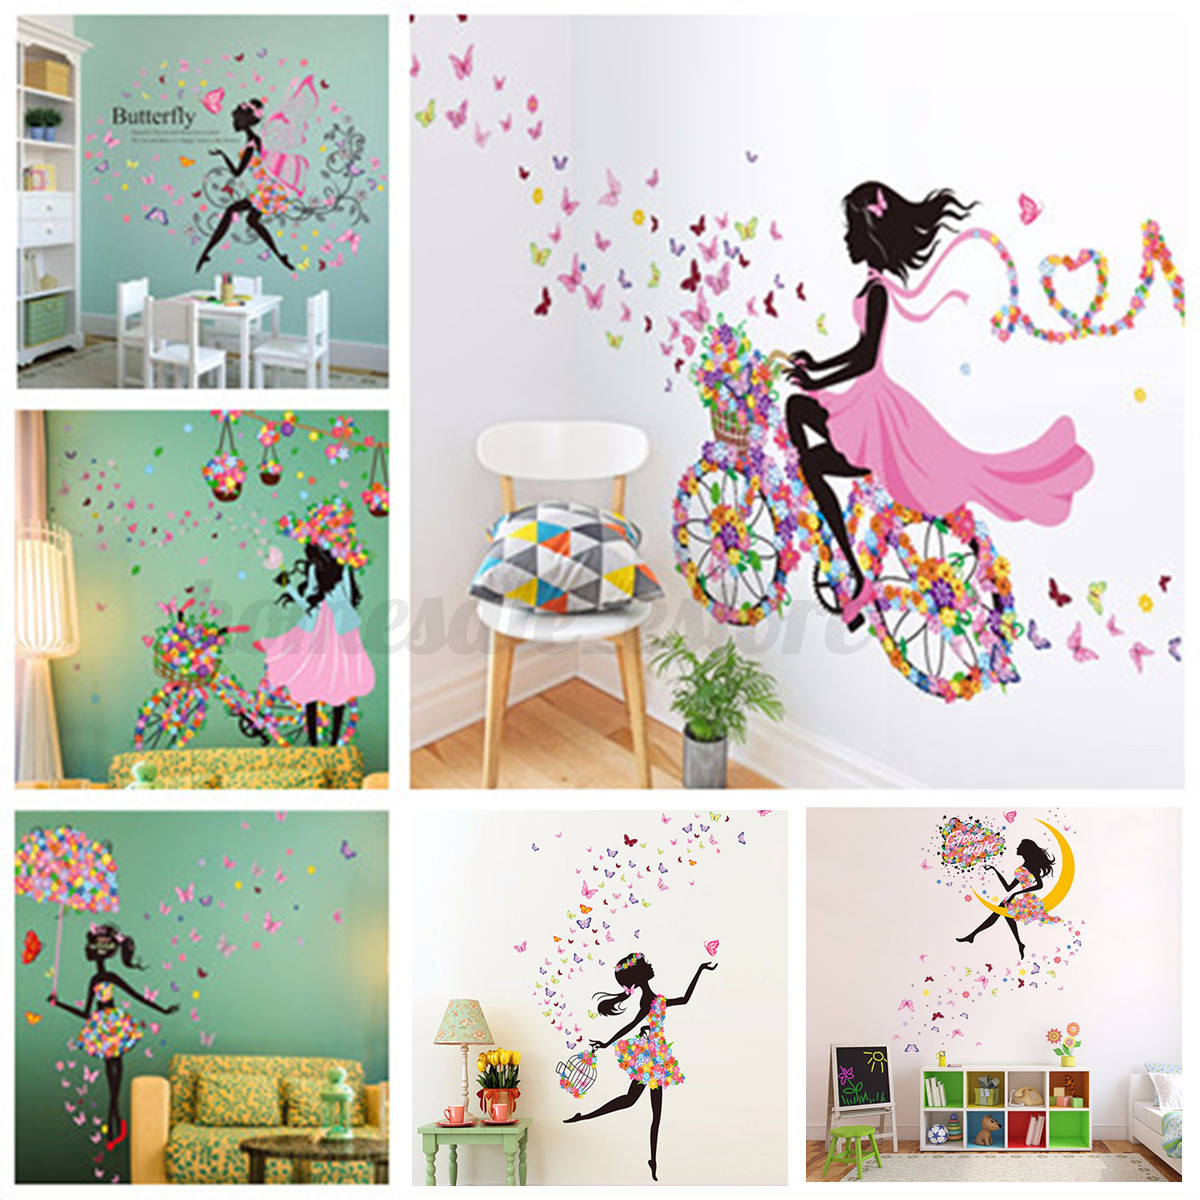 Flower Girl Removable Wall Art Sticker Vinyl Decal Kids ... on Room Decor Stickers id=96293